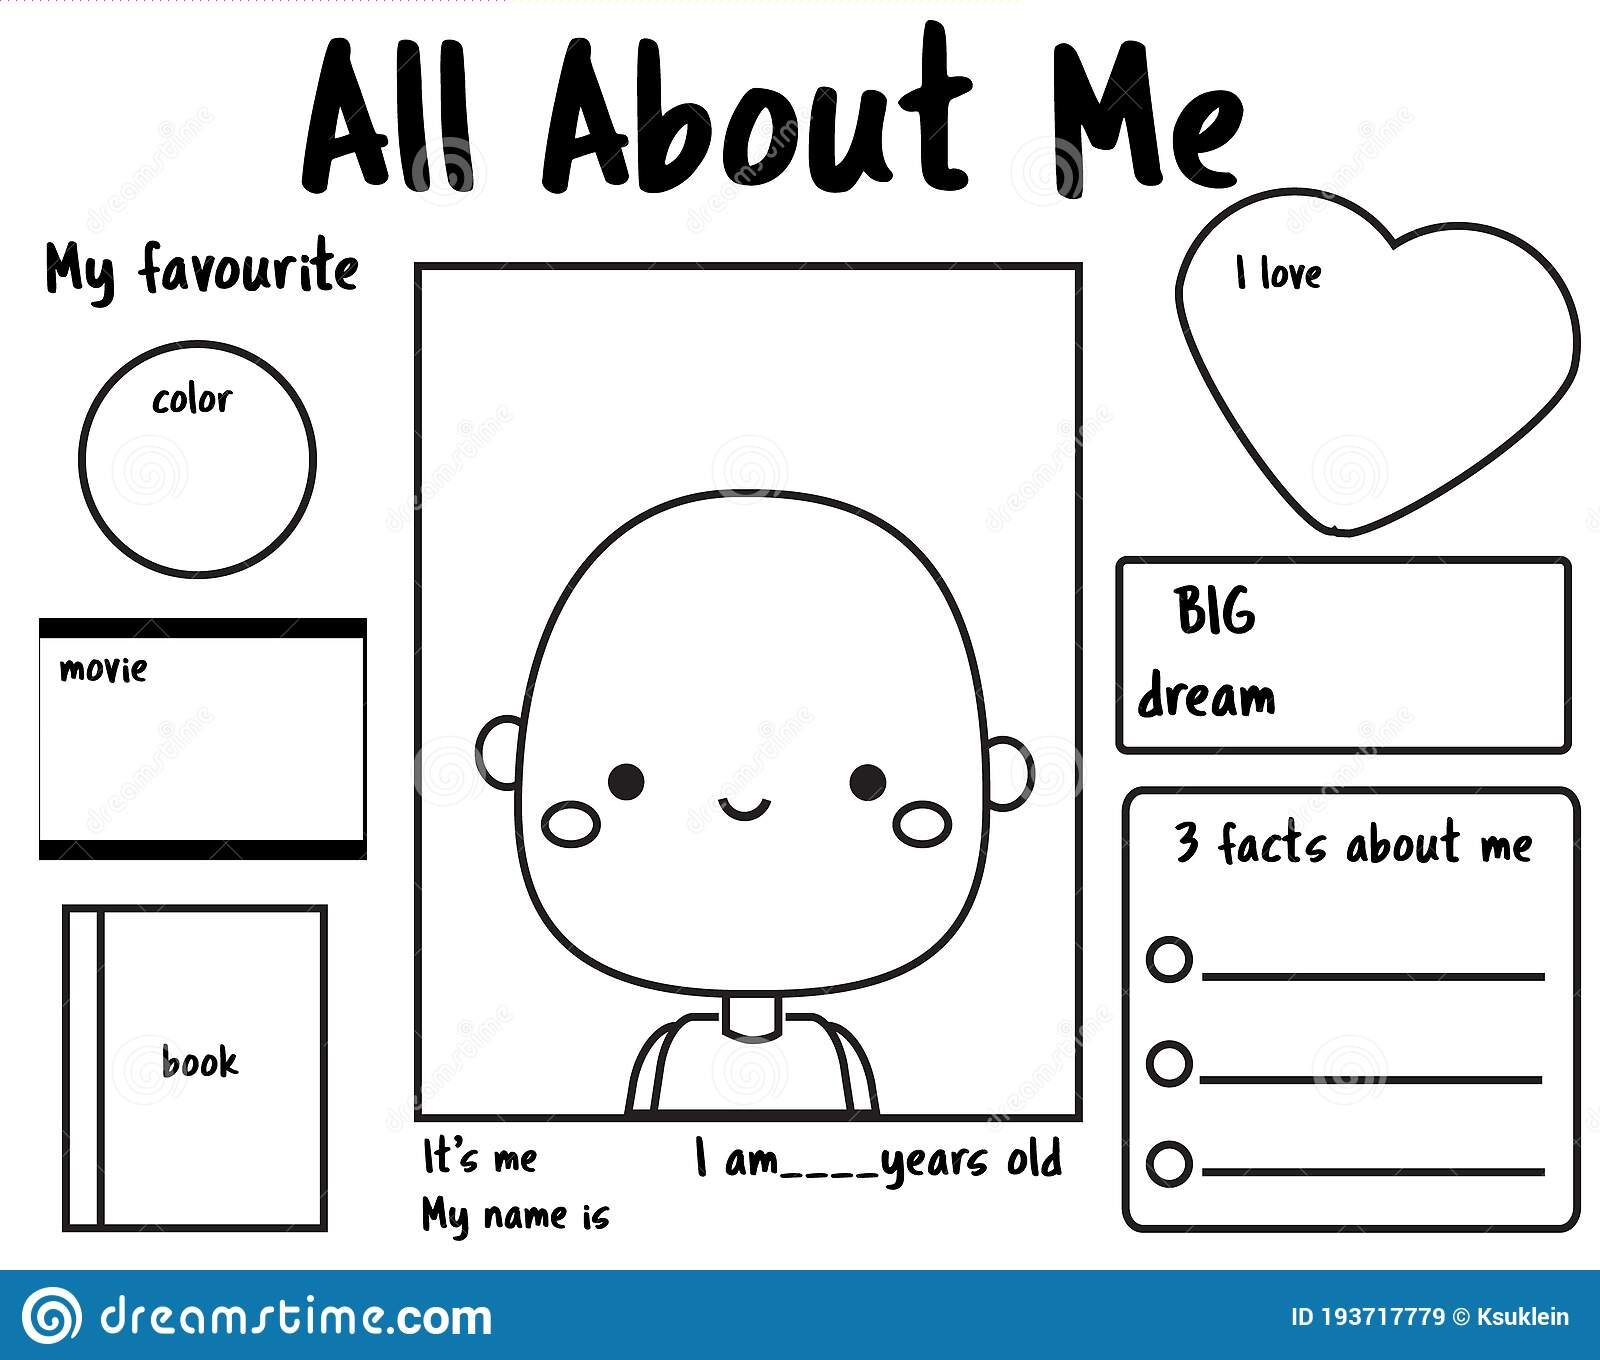 All About Me Printable Back To School Writing Prompt For